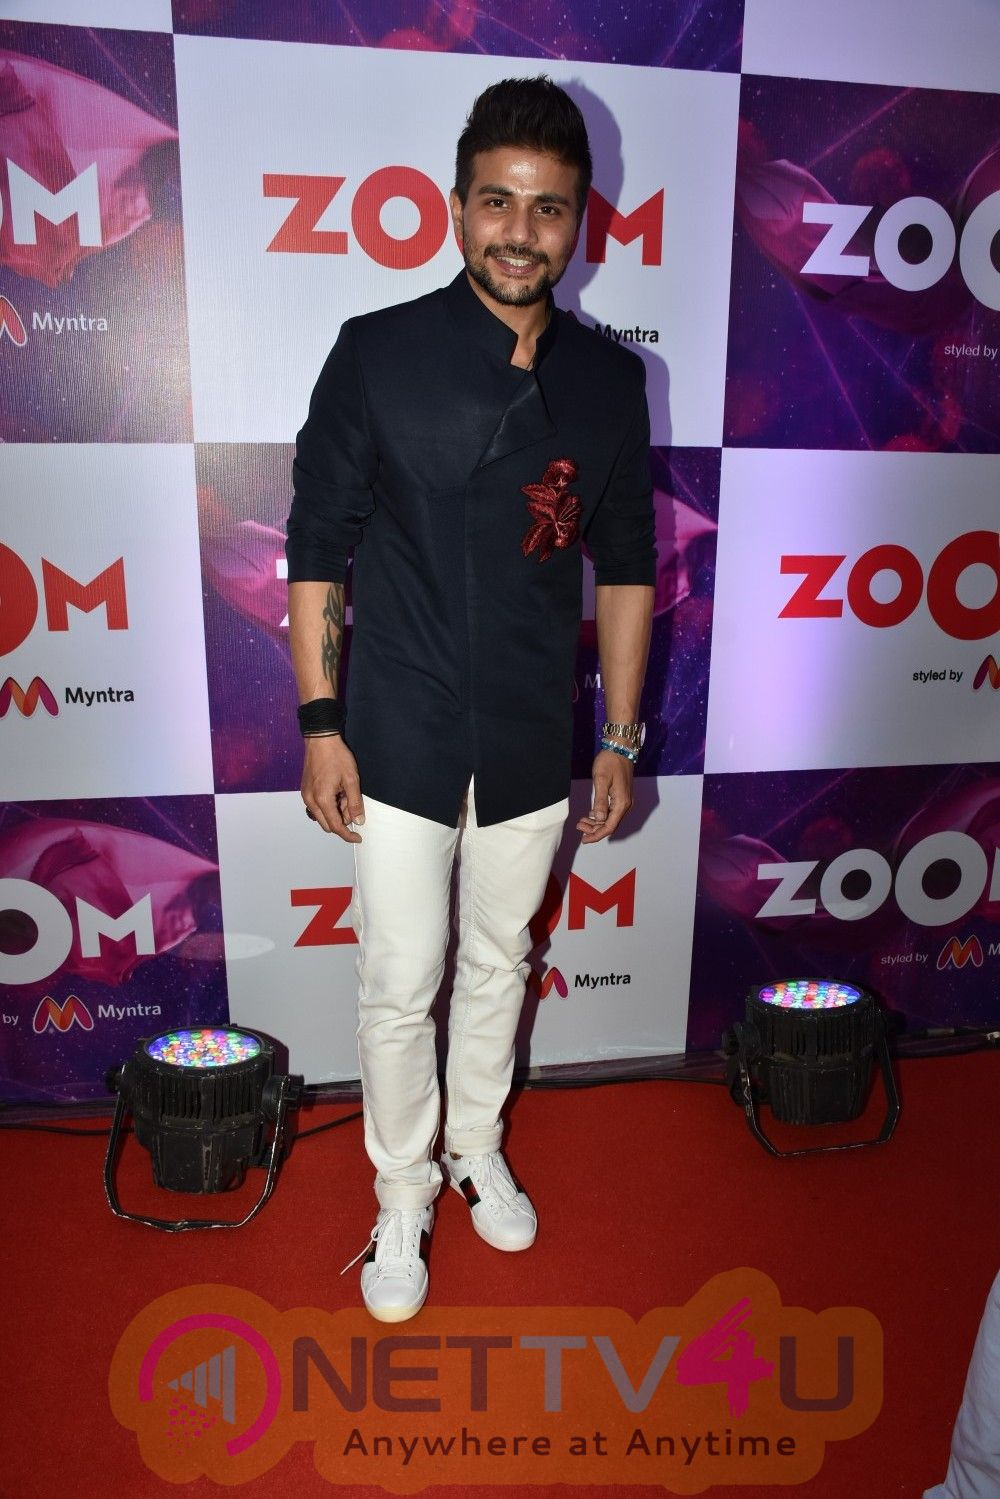 Zoom Styles By Myntra Party Hindi Gallery